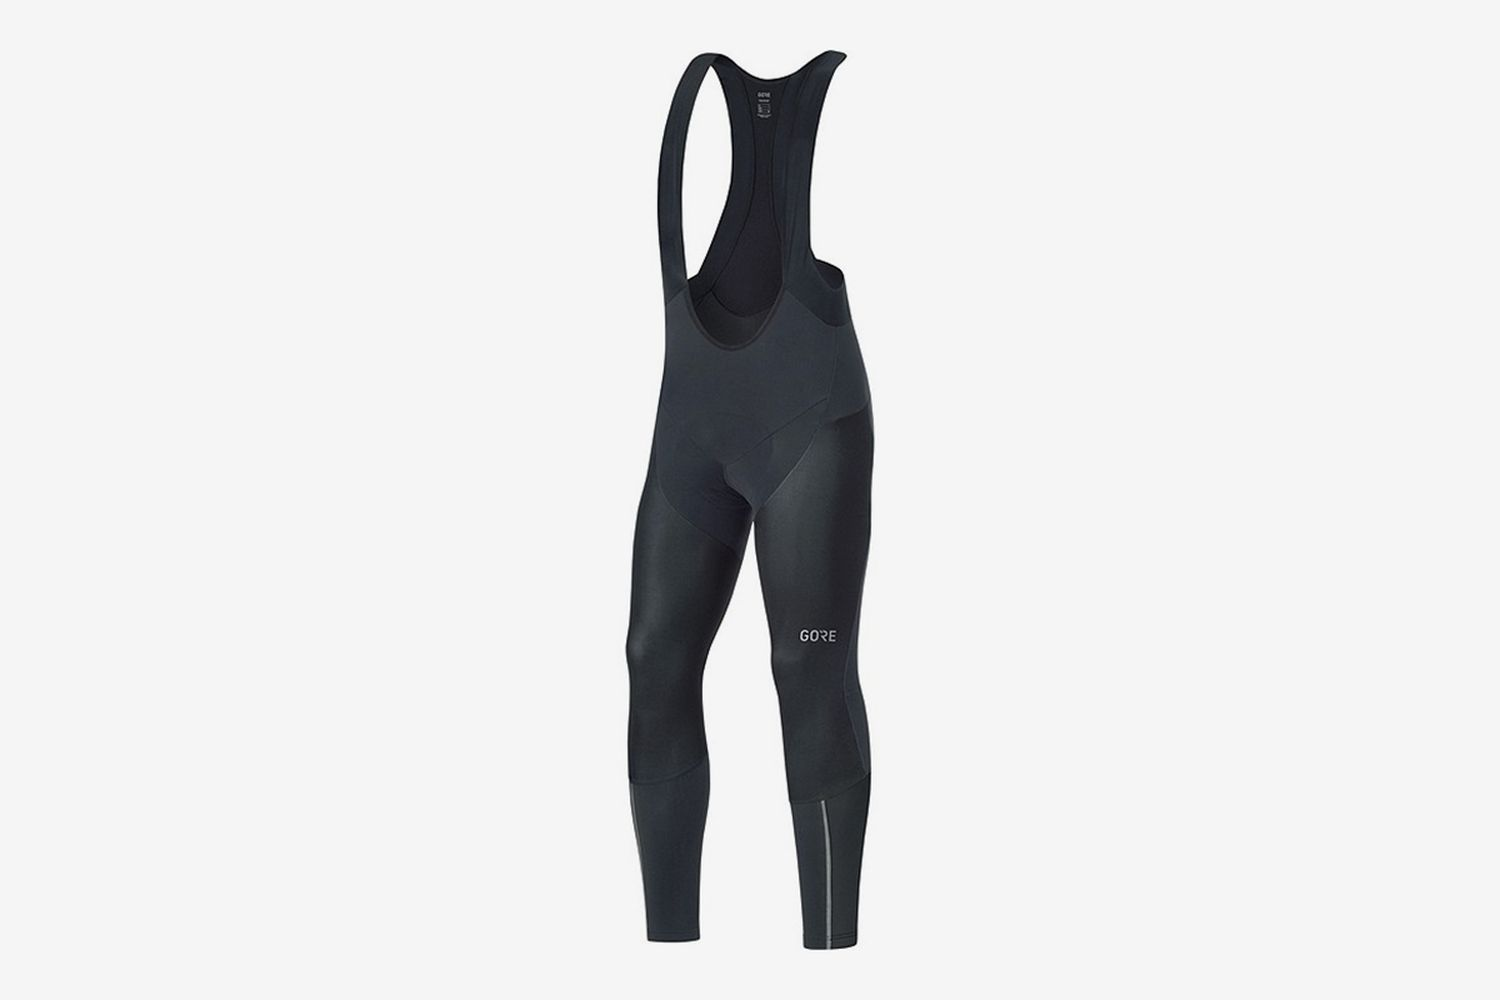 C7 Partial Gore Windstopper Tights